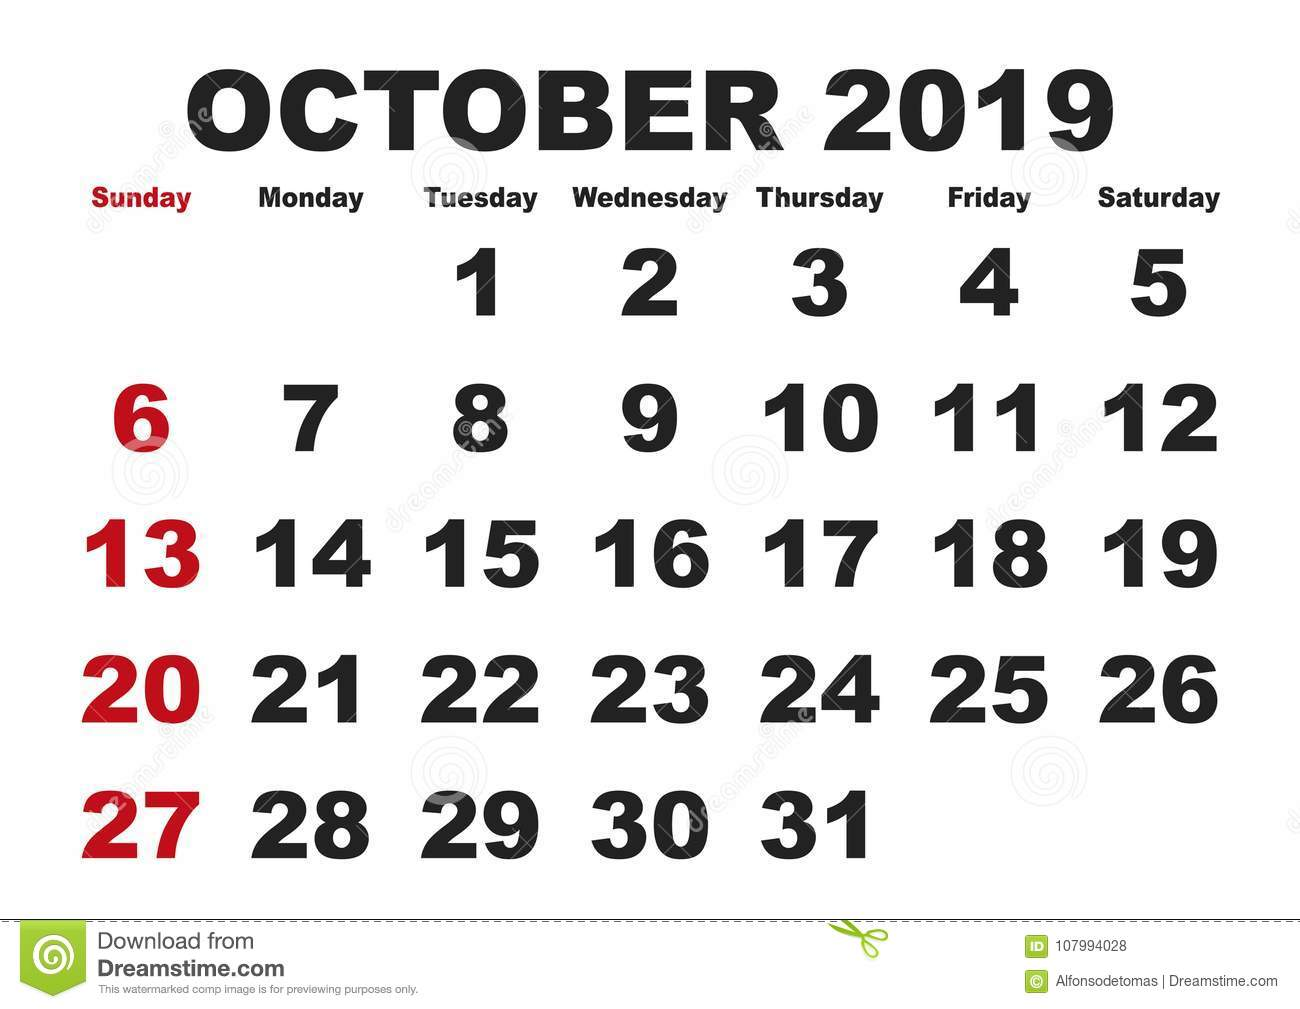 Oct 21 2019 Calendar October Month Calendar 2019 English USA Stock Vector